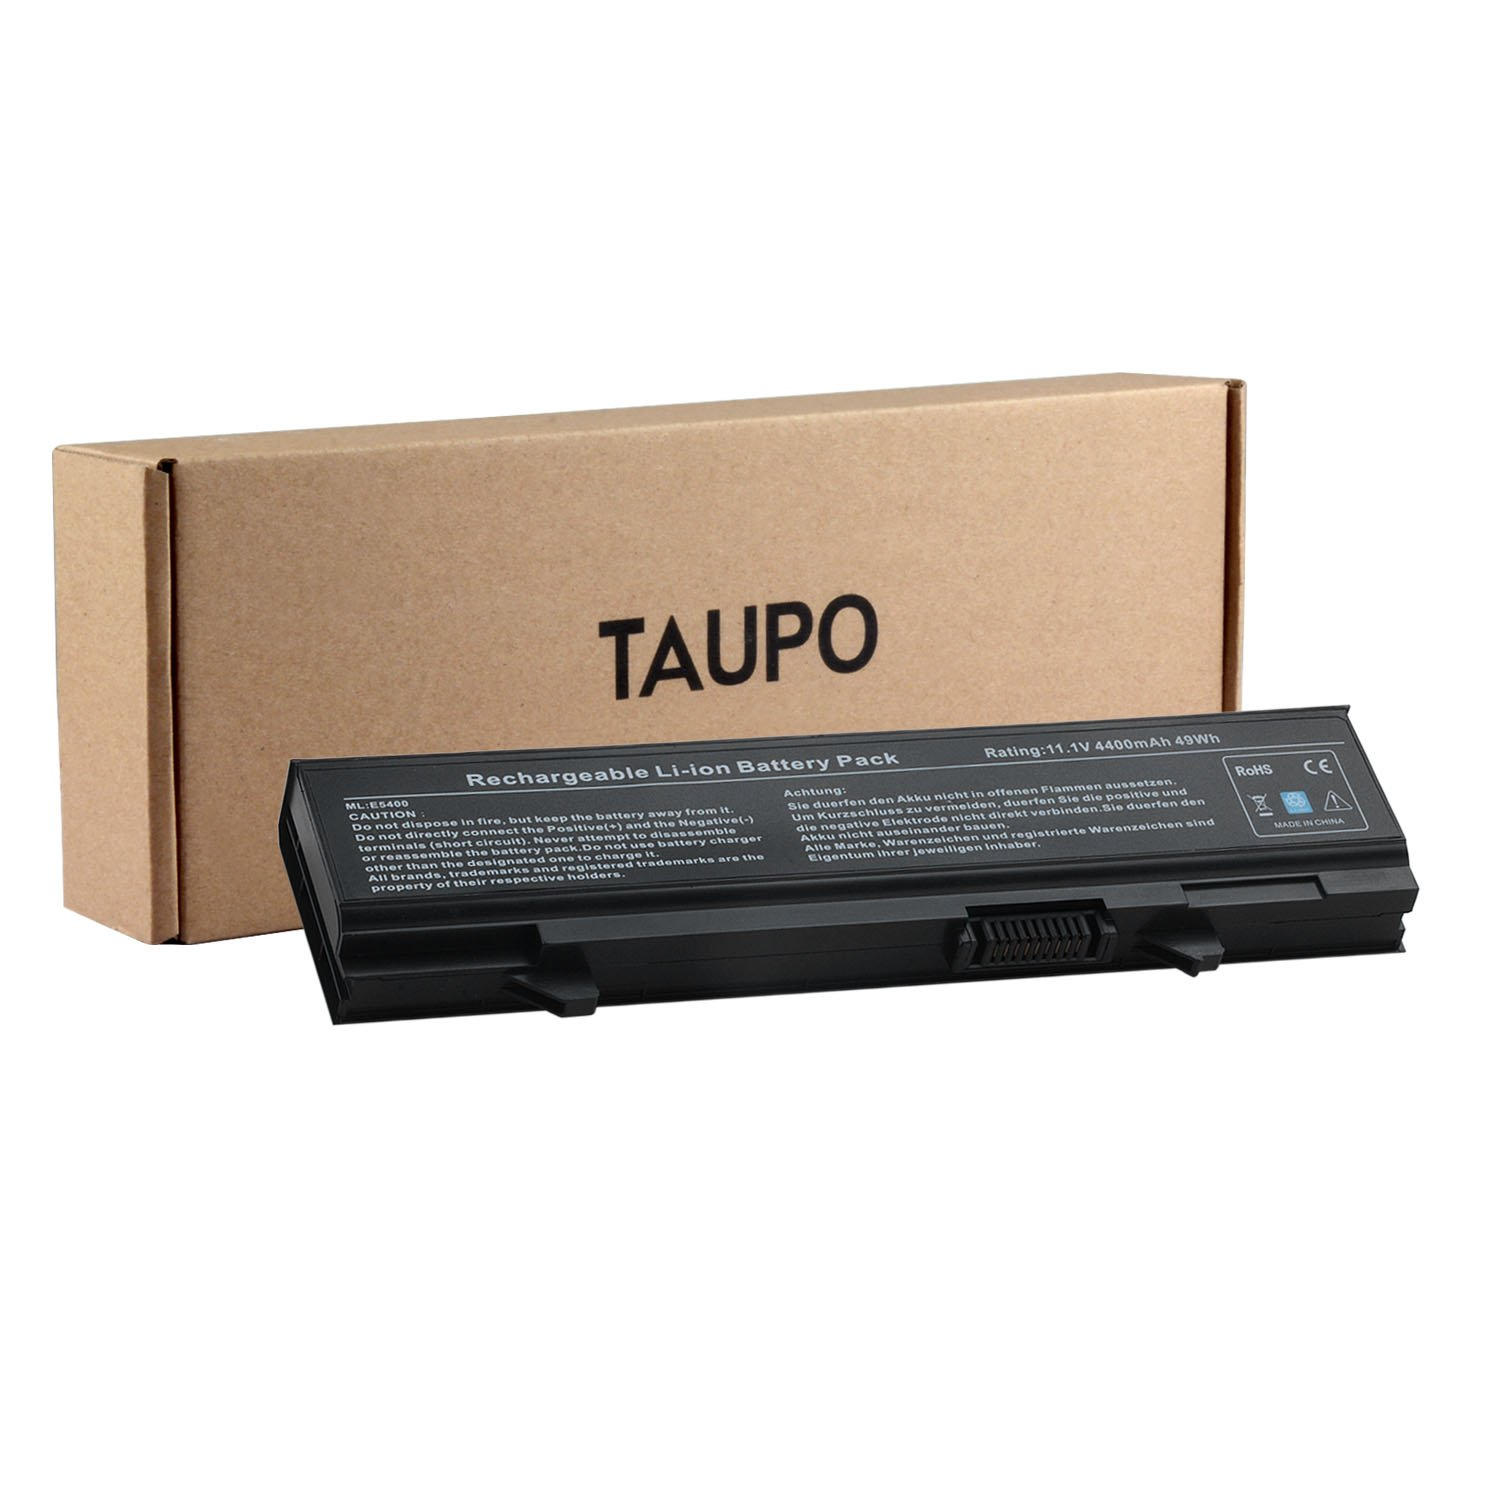 TAUPO New Laptop Battery Replacement for Dell Latitude E5500 E5510 E5400 E5410 Series, fits P/N KM742 WU841 RM661 T749D - 12 Months Warranty DL6E5400Z001